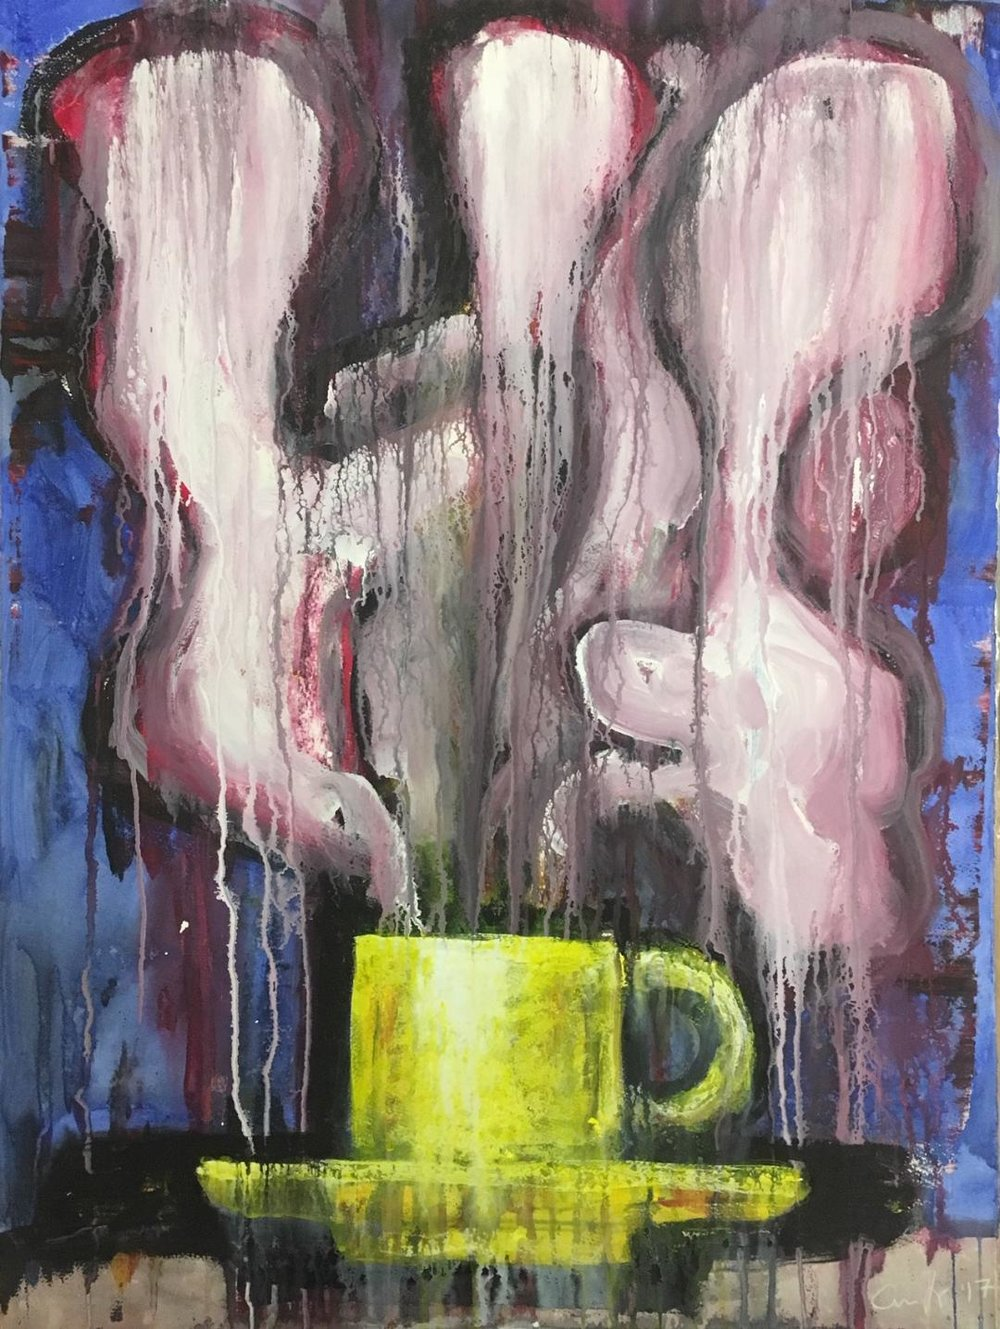 Steaming Cup , 2017 acrylic on paper, 30 x 22 inches